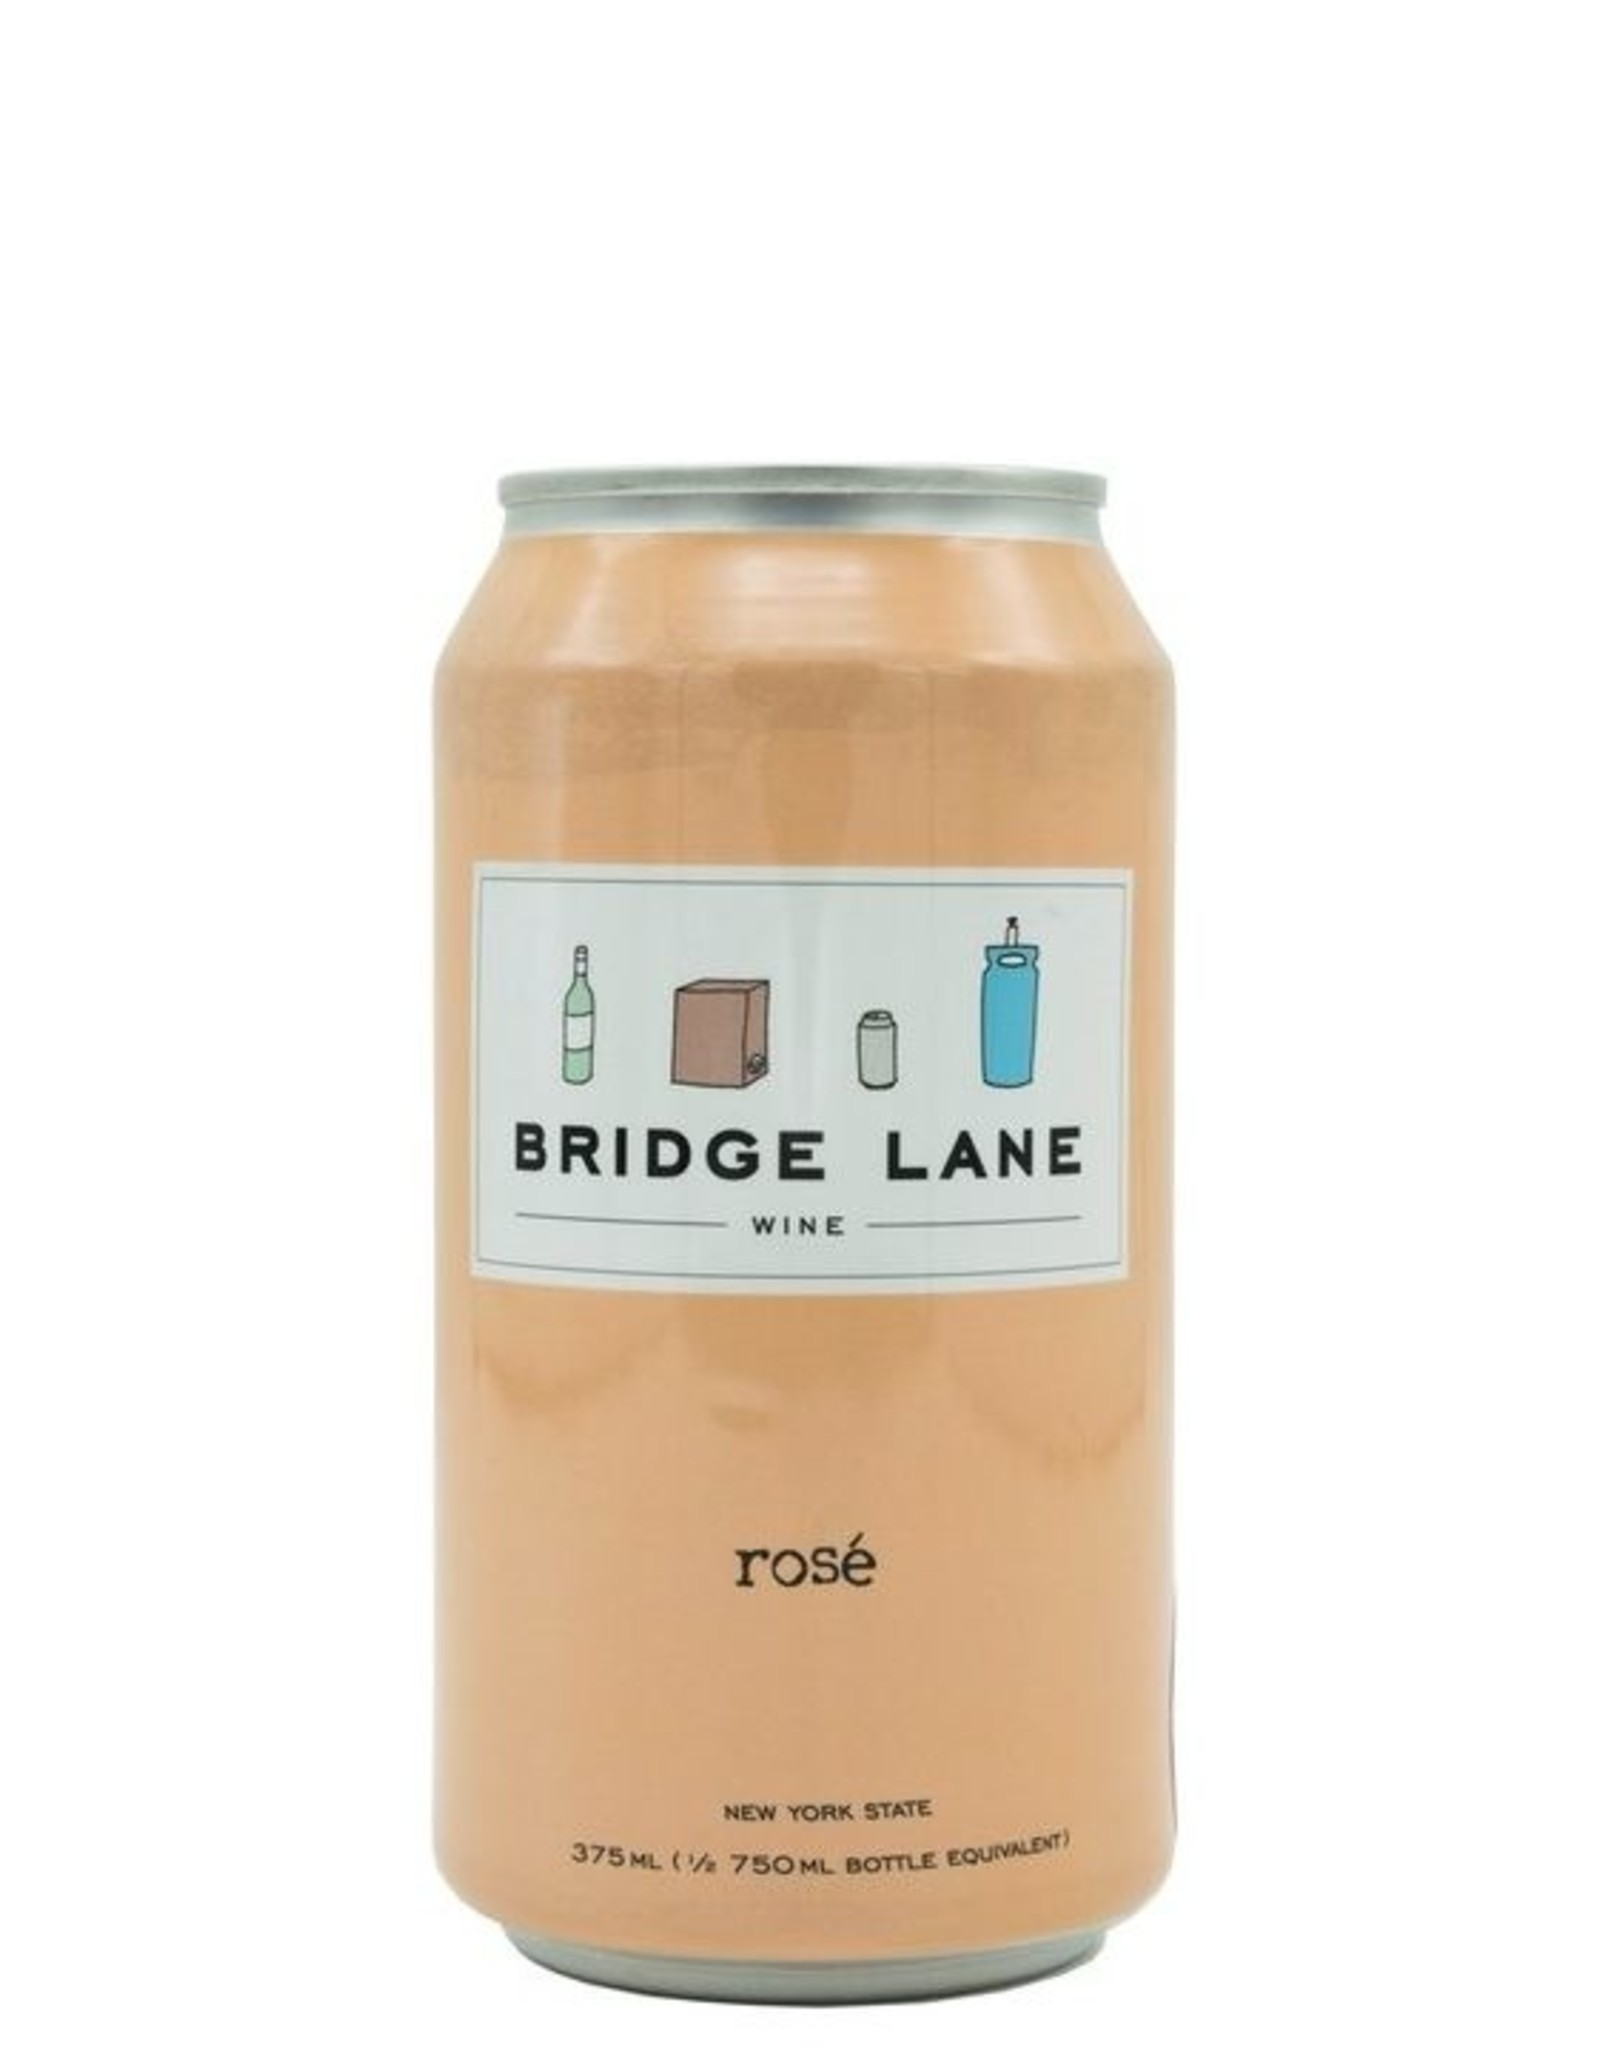 Bridge Lane Rose 375ml